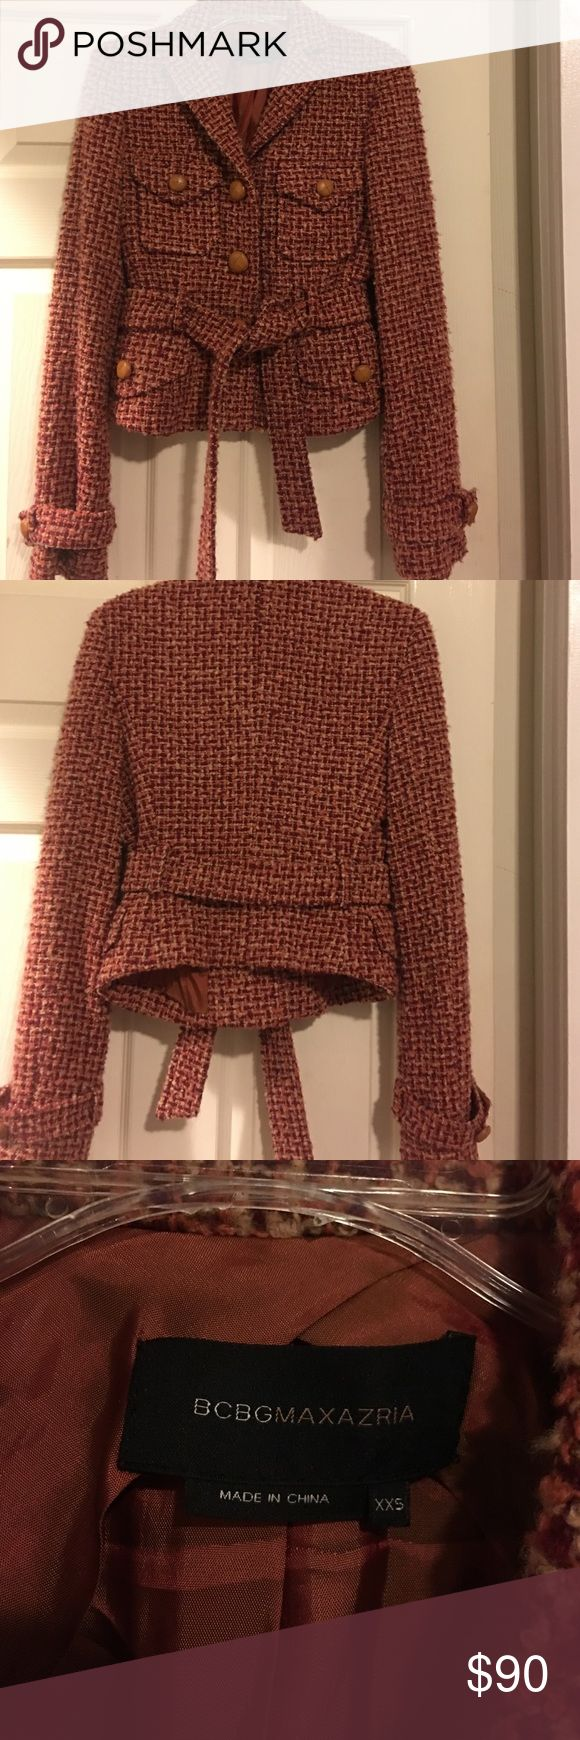 Beautiful like new BCBGMAXAZRIA jacket! Beautiful checkered style jacket. Worn maybe two times, in brand new condition. Perfect for fall and winter. Also goes great for work if you like something with a little sass! No markings, and includes 3 extra buttons that will come hidden in a pocket when someone purchases this gem. Comes with a slight crop style. BCBGMaxAzria Jackets & Coats Blazers